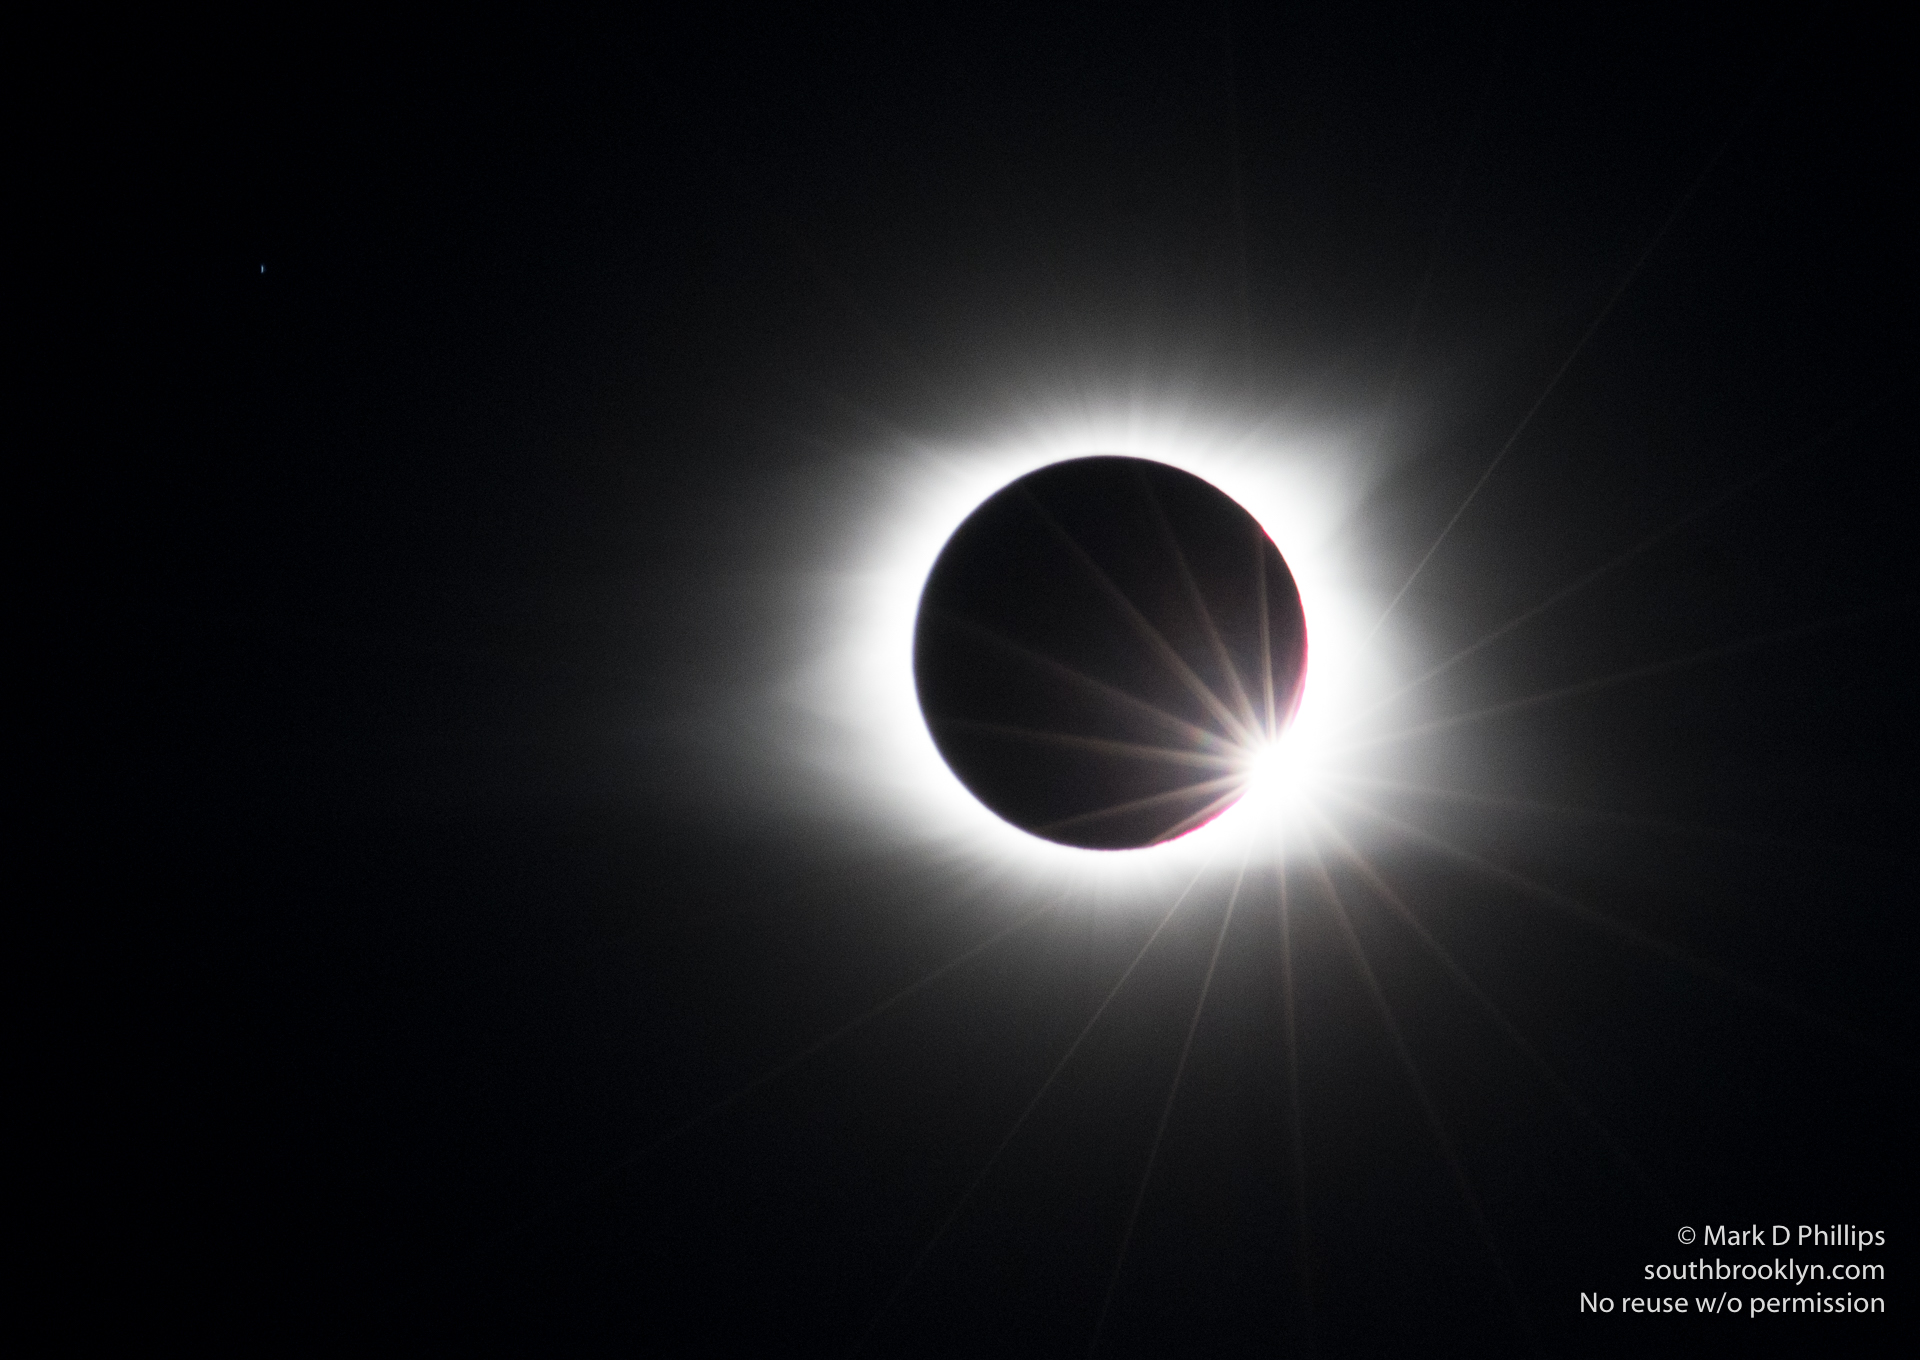 TotalSolarEclipse_NC_CRmarkDphillips